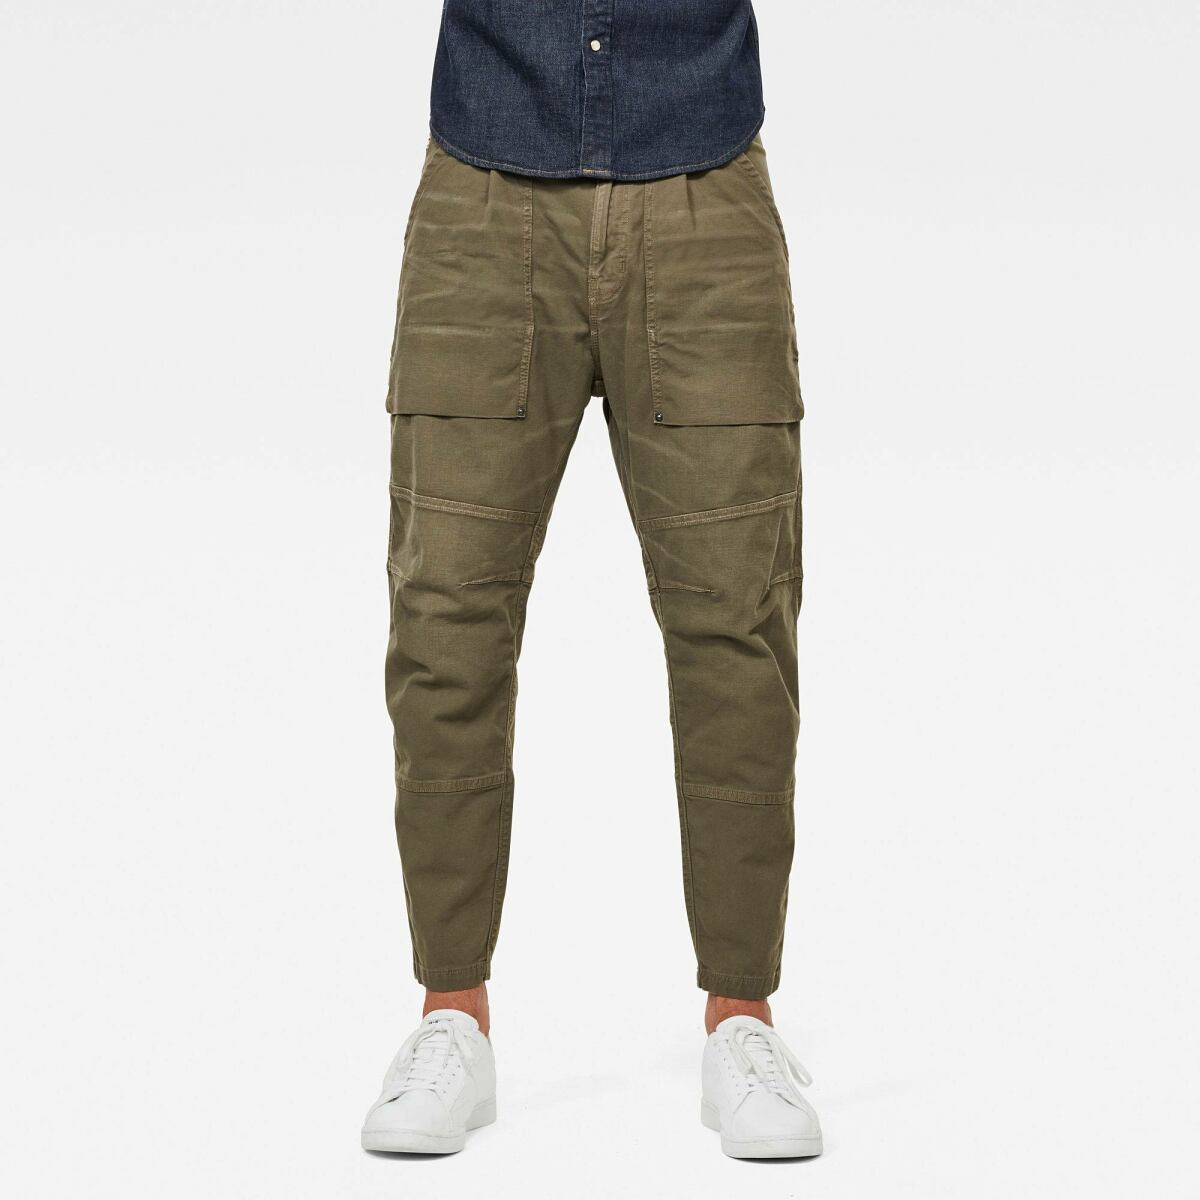 Green Man Pants Fatigue Relaxed Tapered Pants G-Star MEN